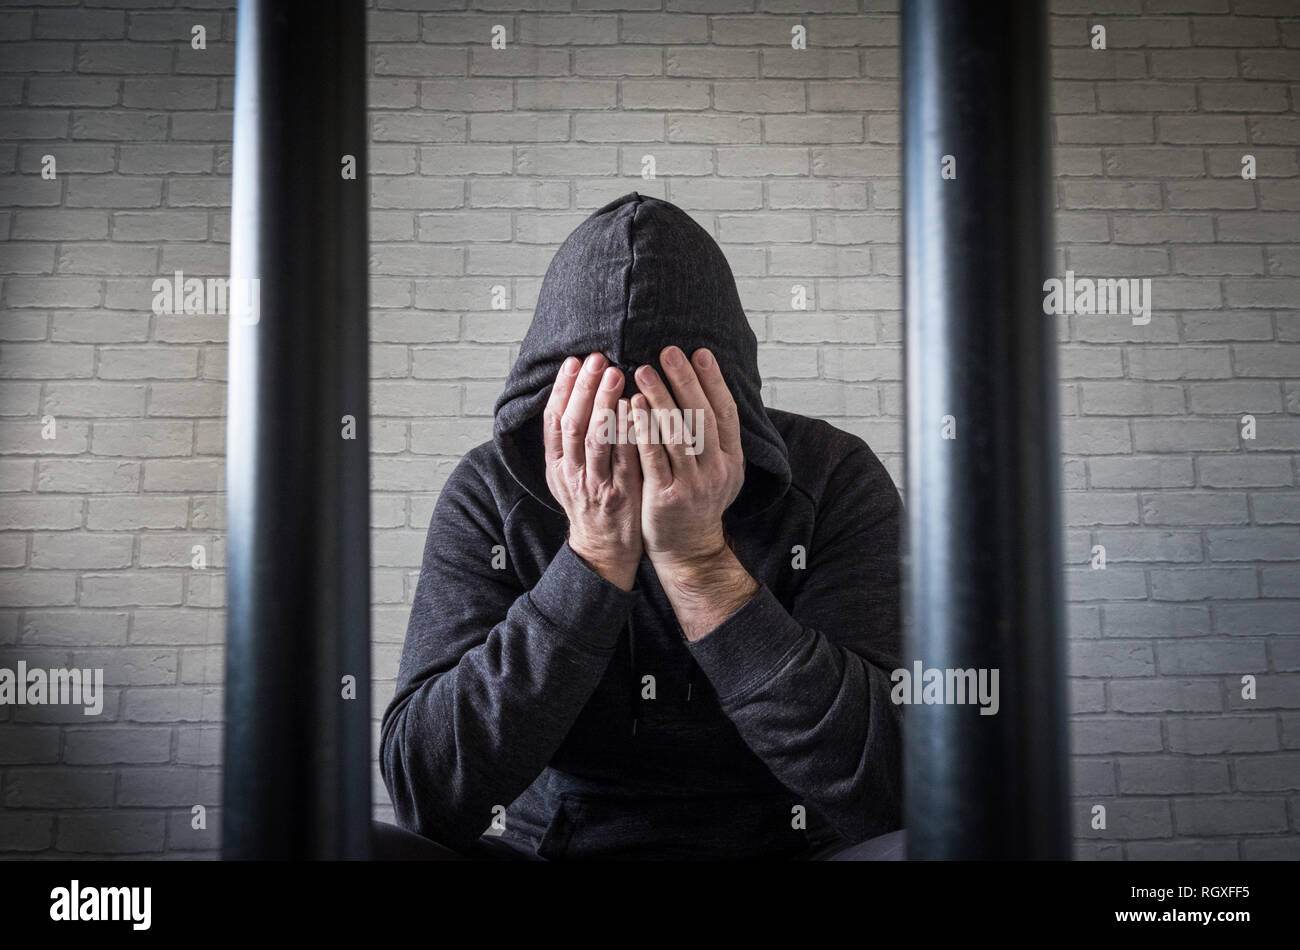 A prisoner with his head in his hands behind bars in a prison cell (picture posed by model) - Stock Image